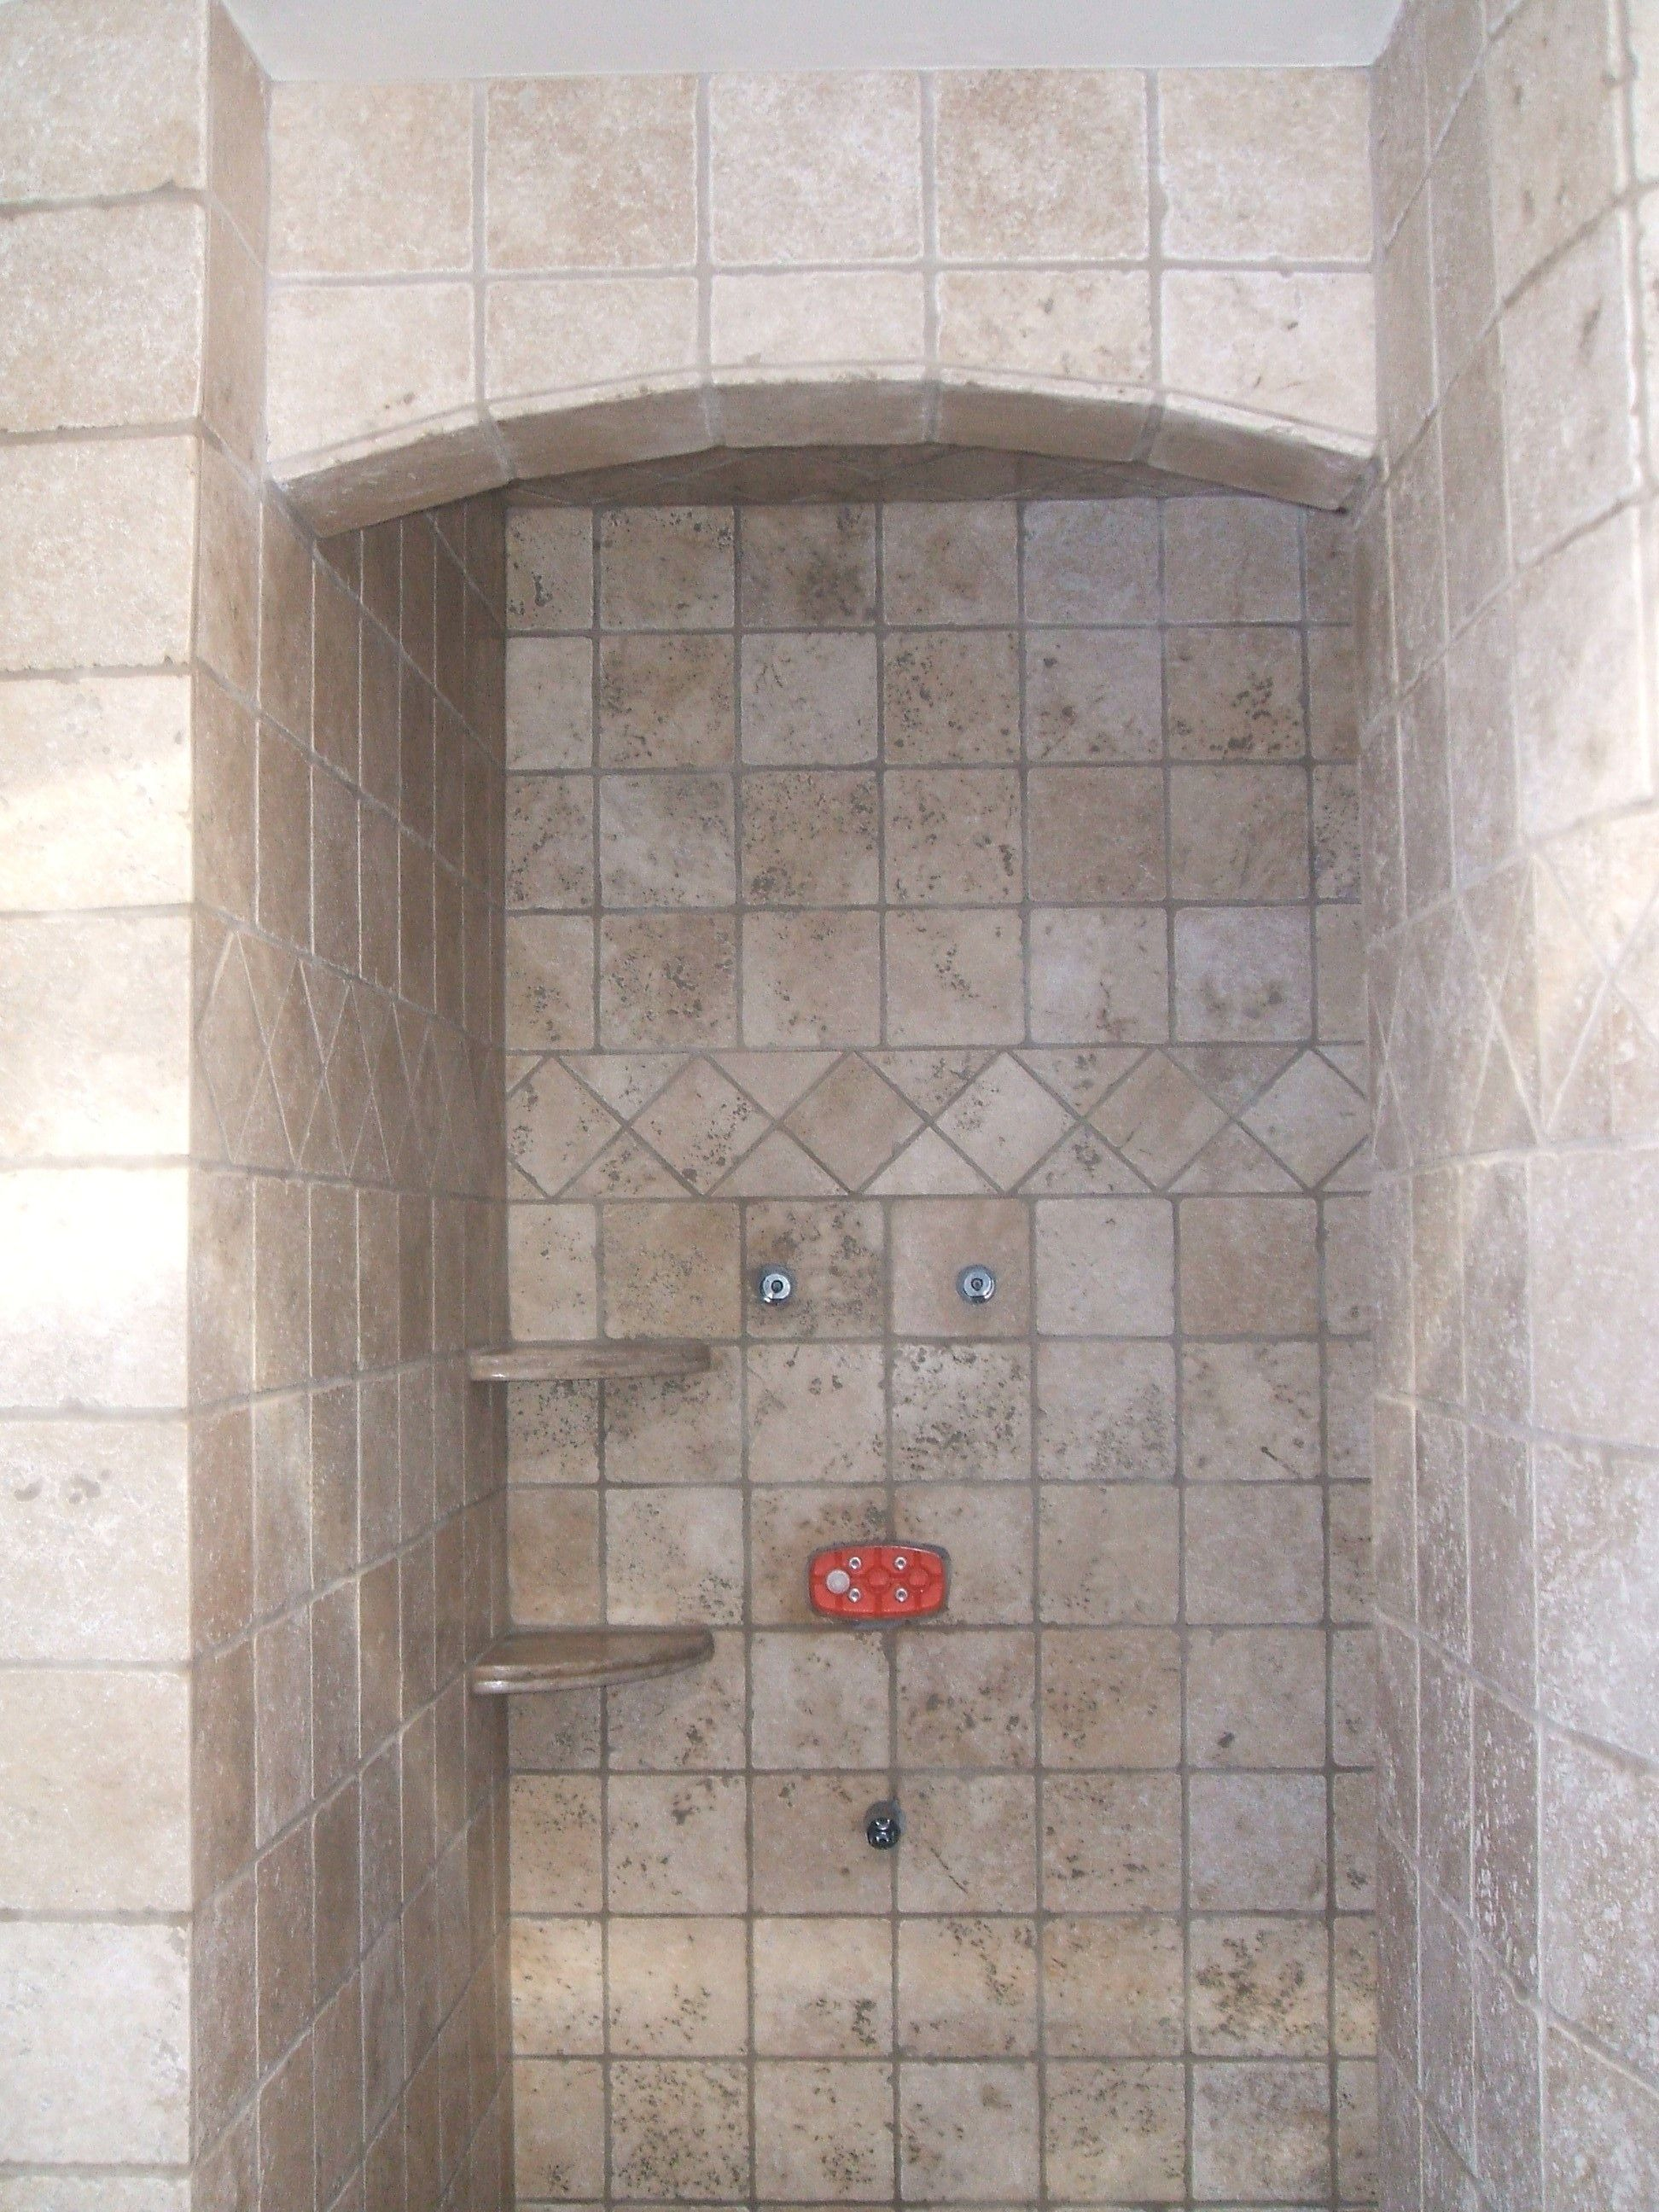 Terrific ceramic tile shower ideas small bathrooms with for Pictures of bathroom tile designs